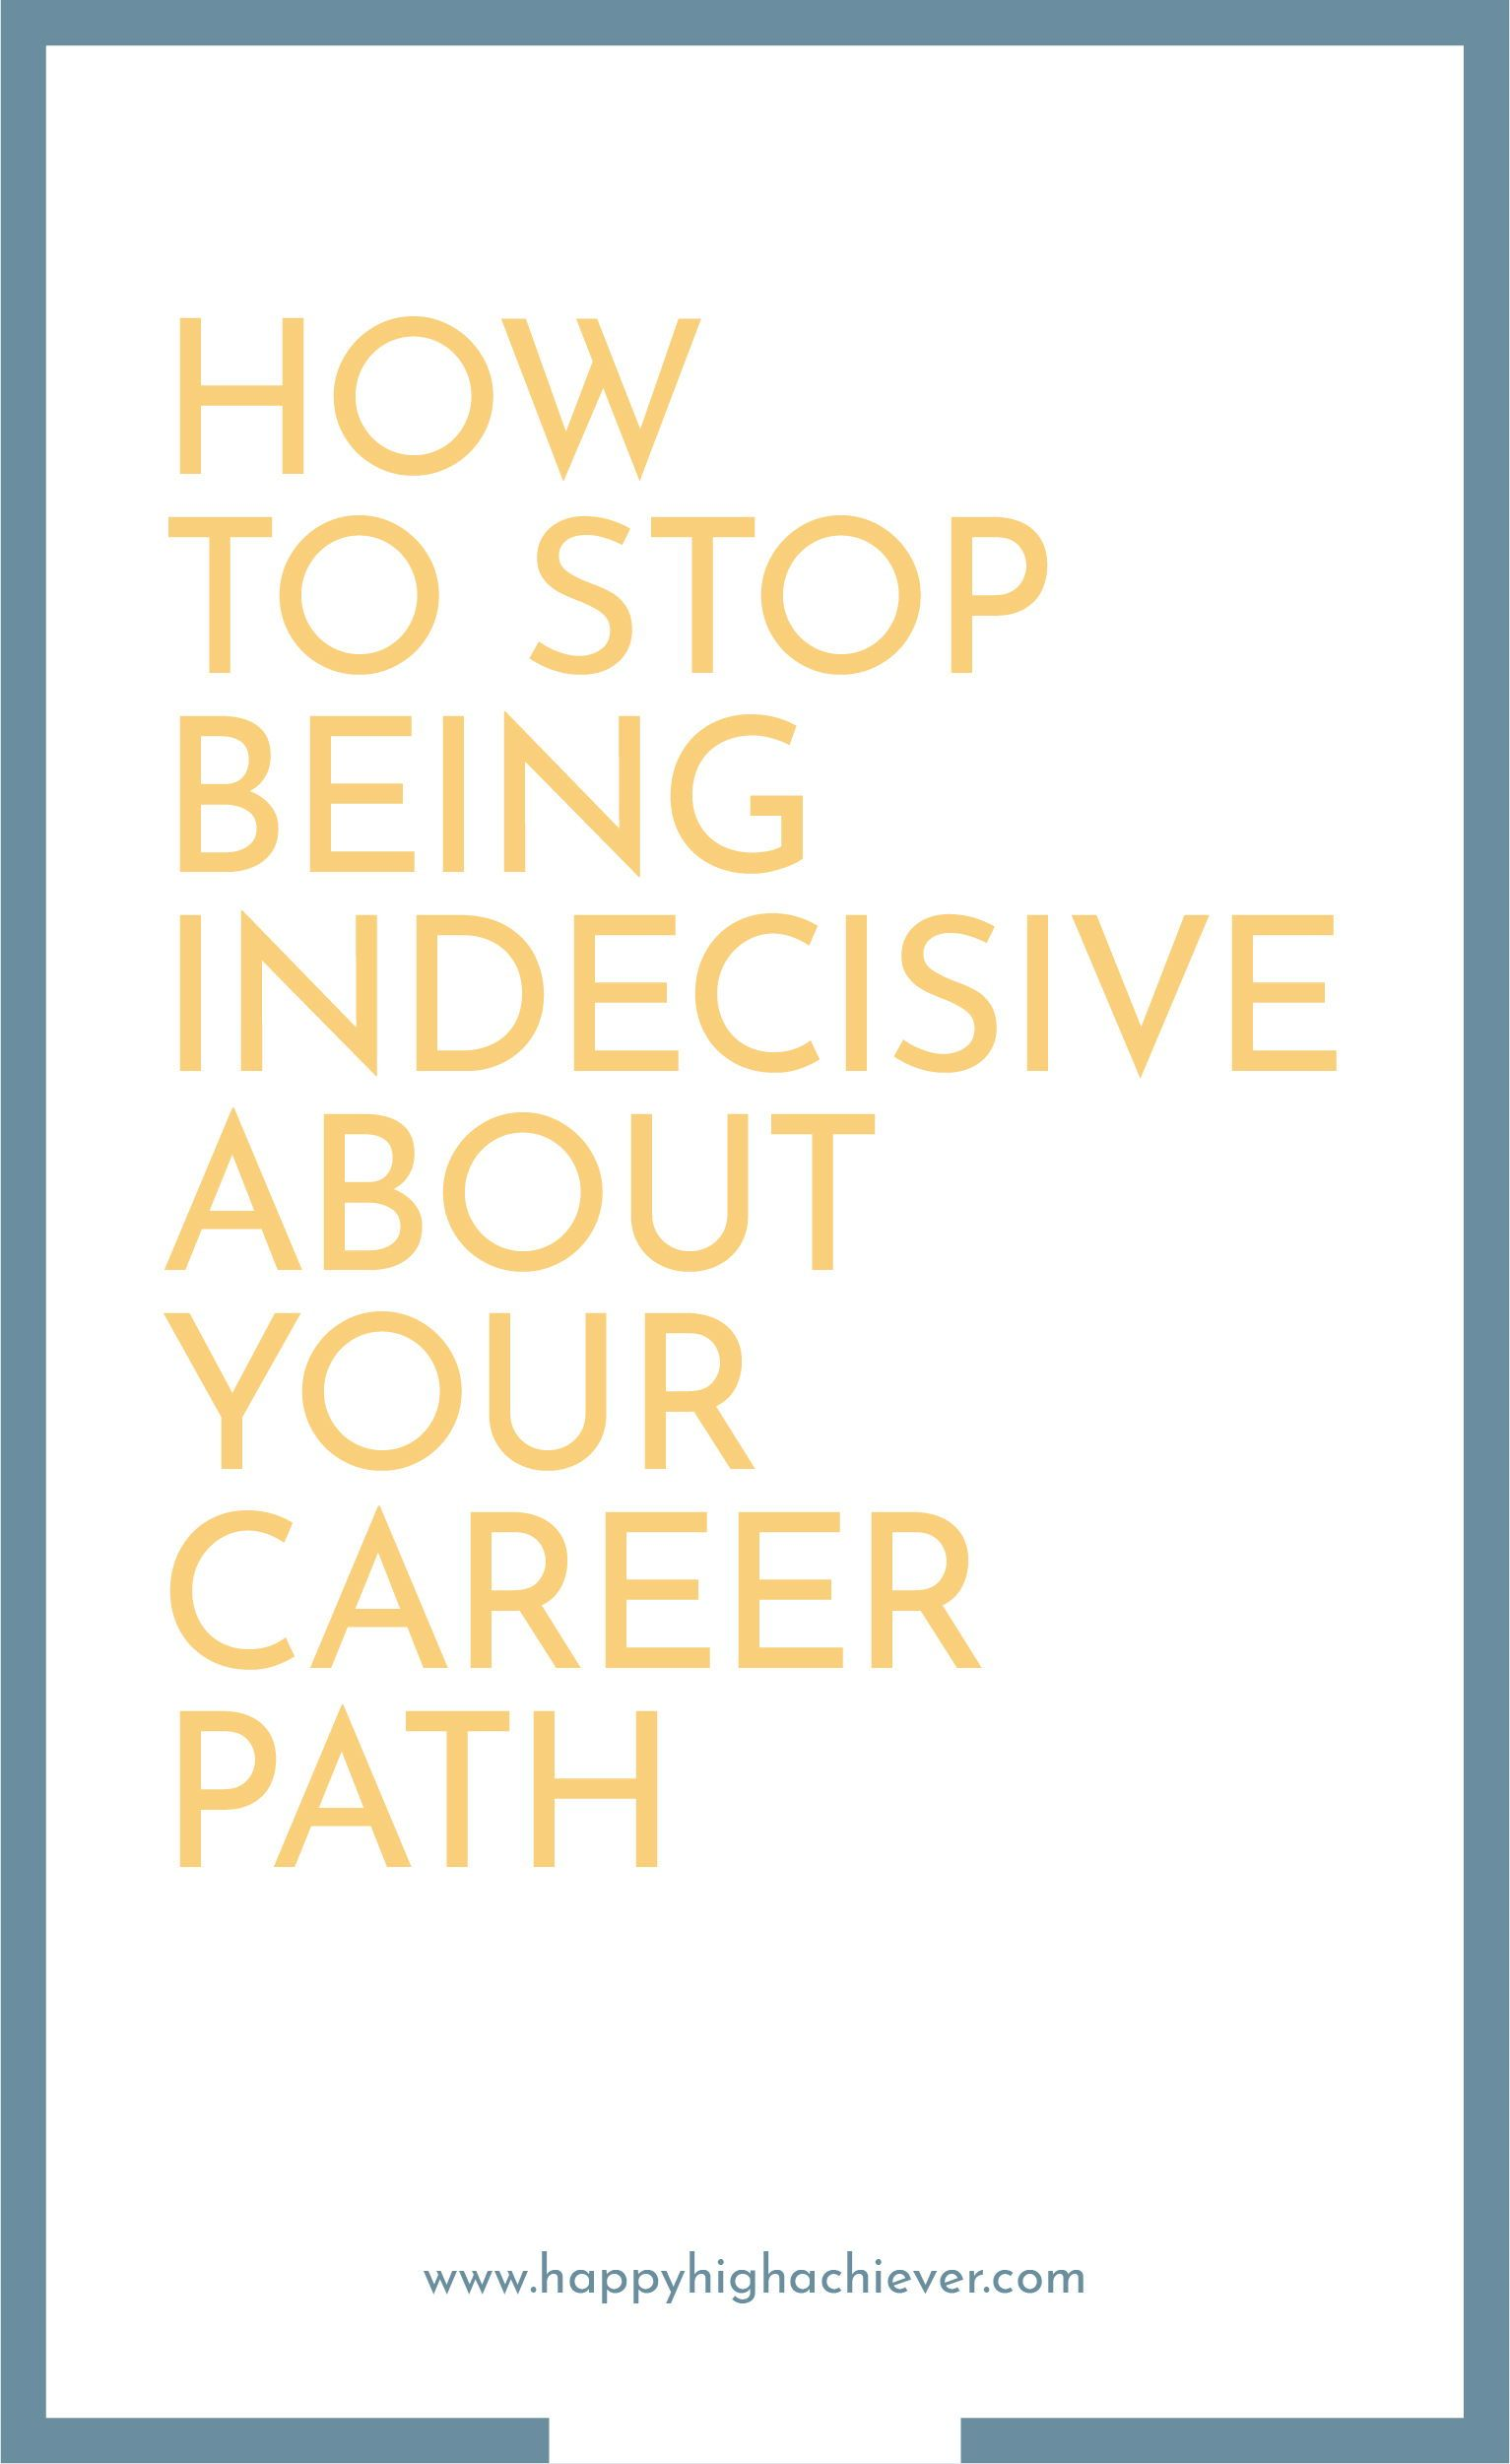 How To Stop Being Indecisive About Your Career Path